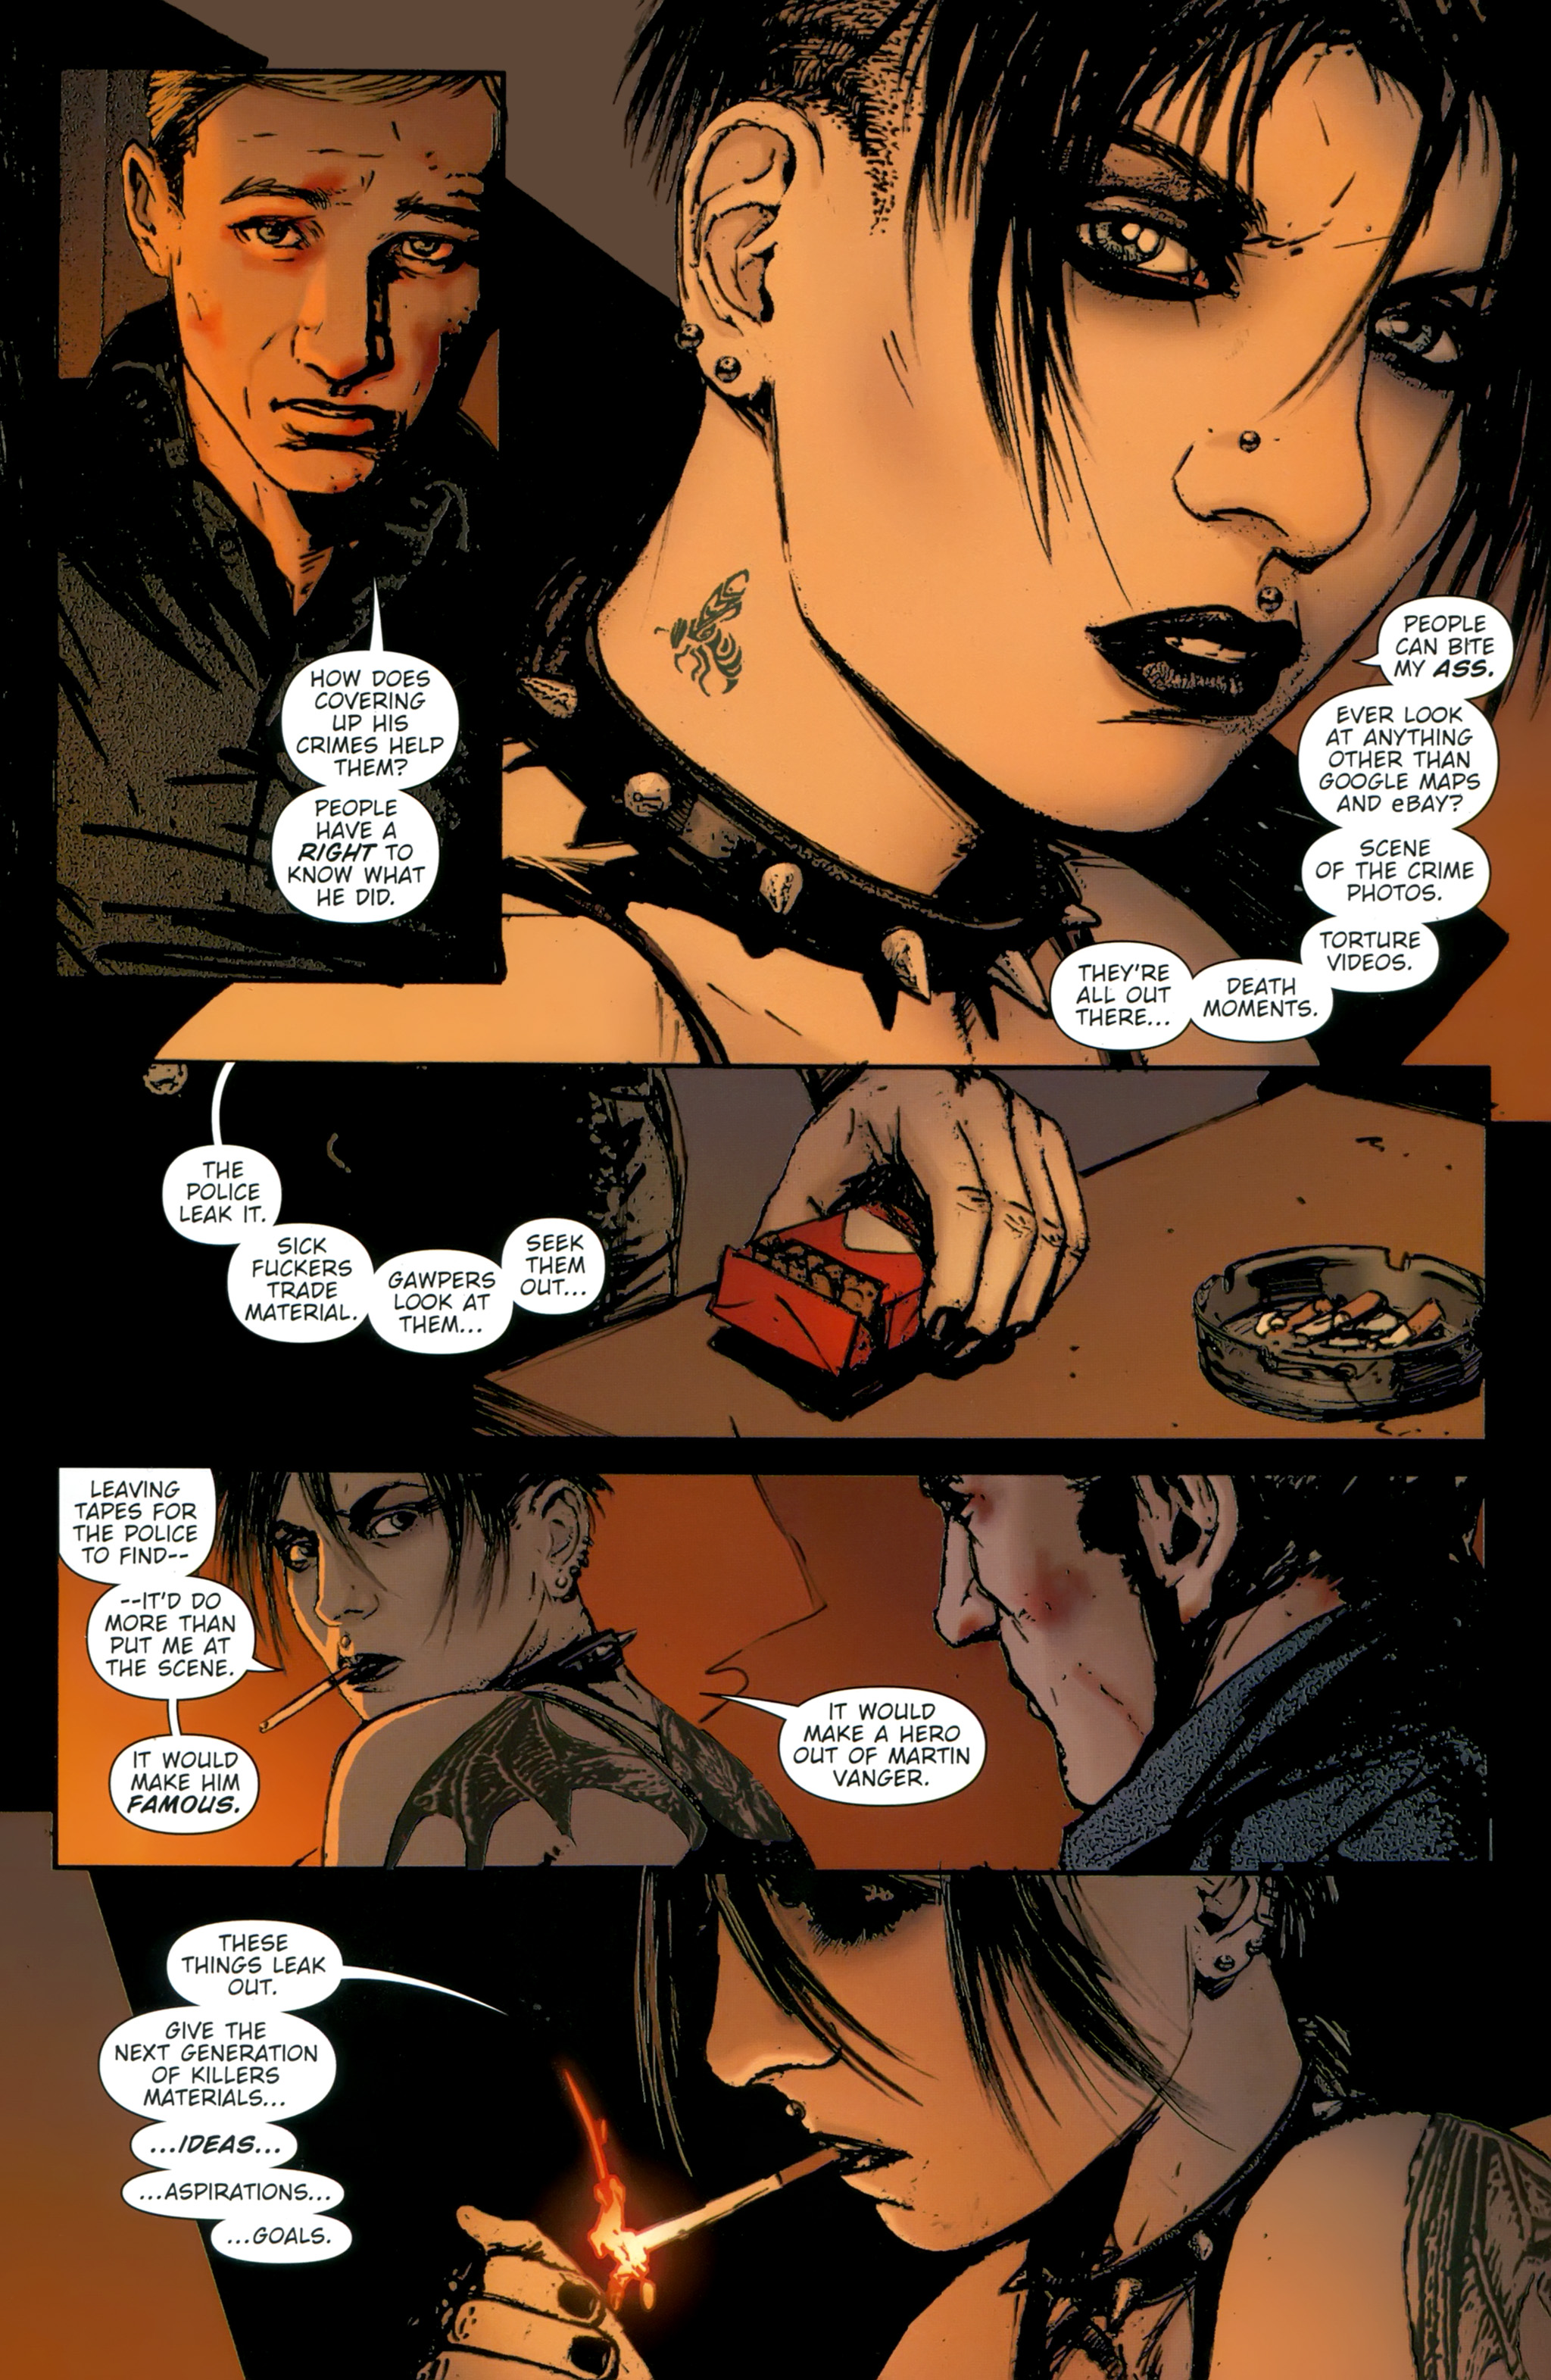 Read online The Girl With the Dragon Tattoo comic -  Issue # TPB 2 - 116